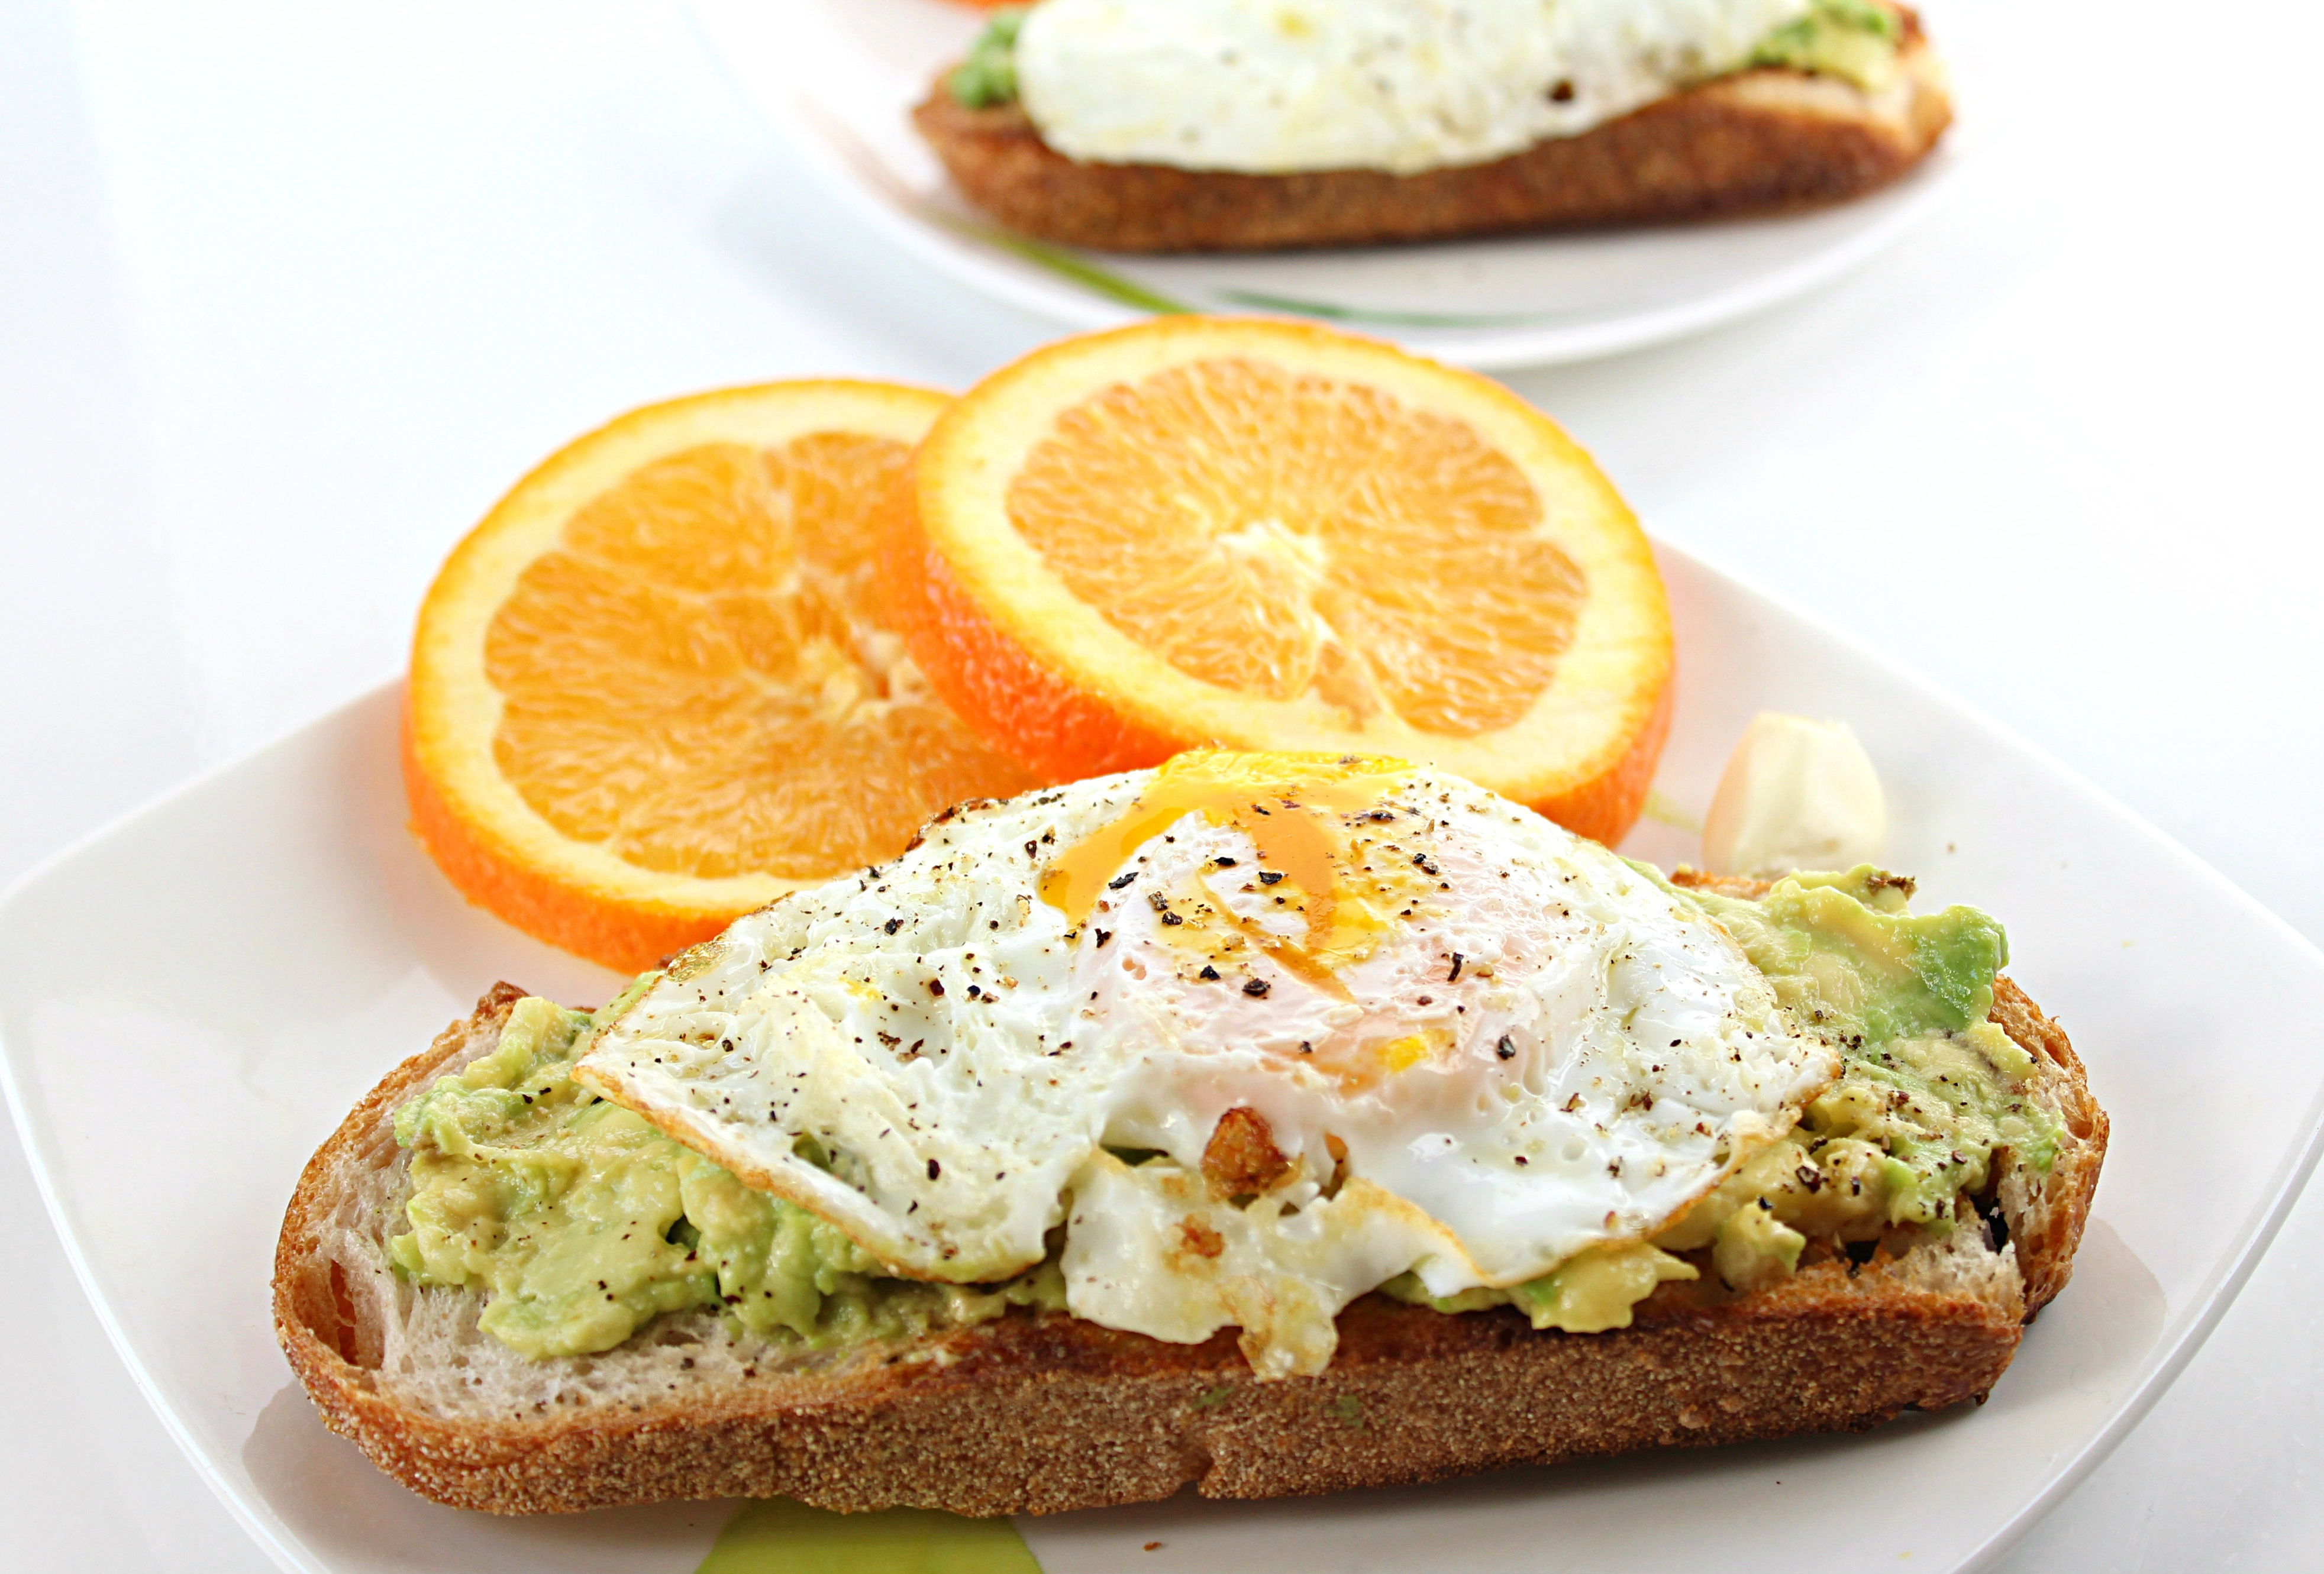 Avocado Toast with Garlic and Over Easy Egg